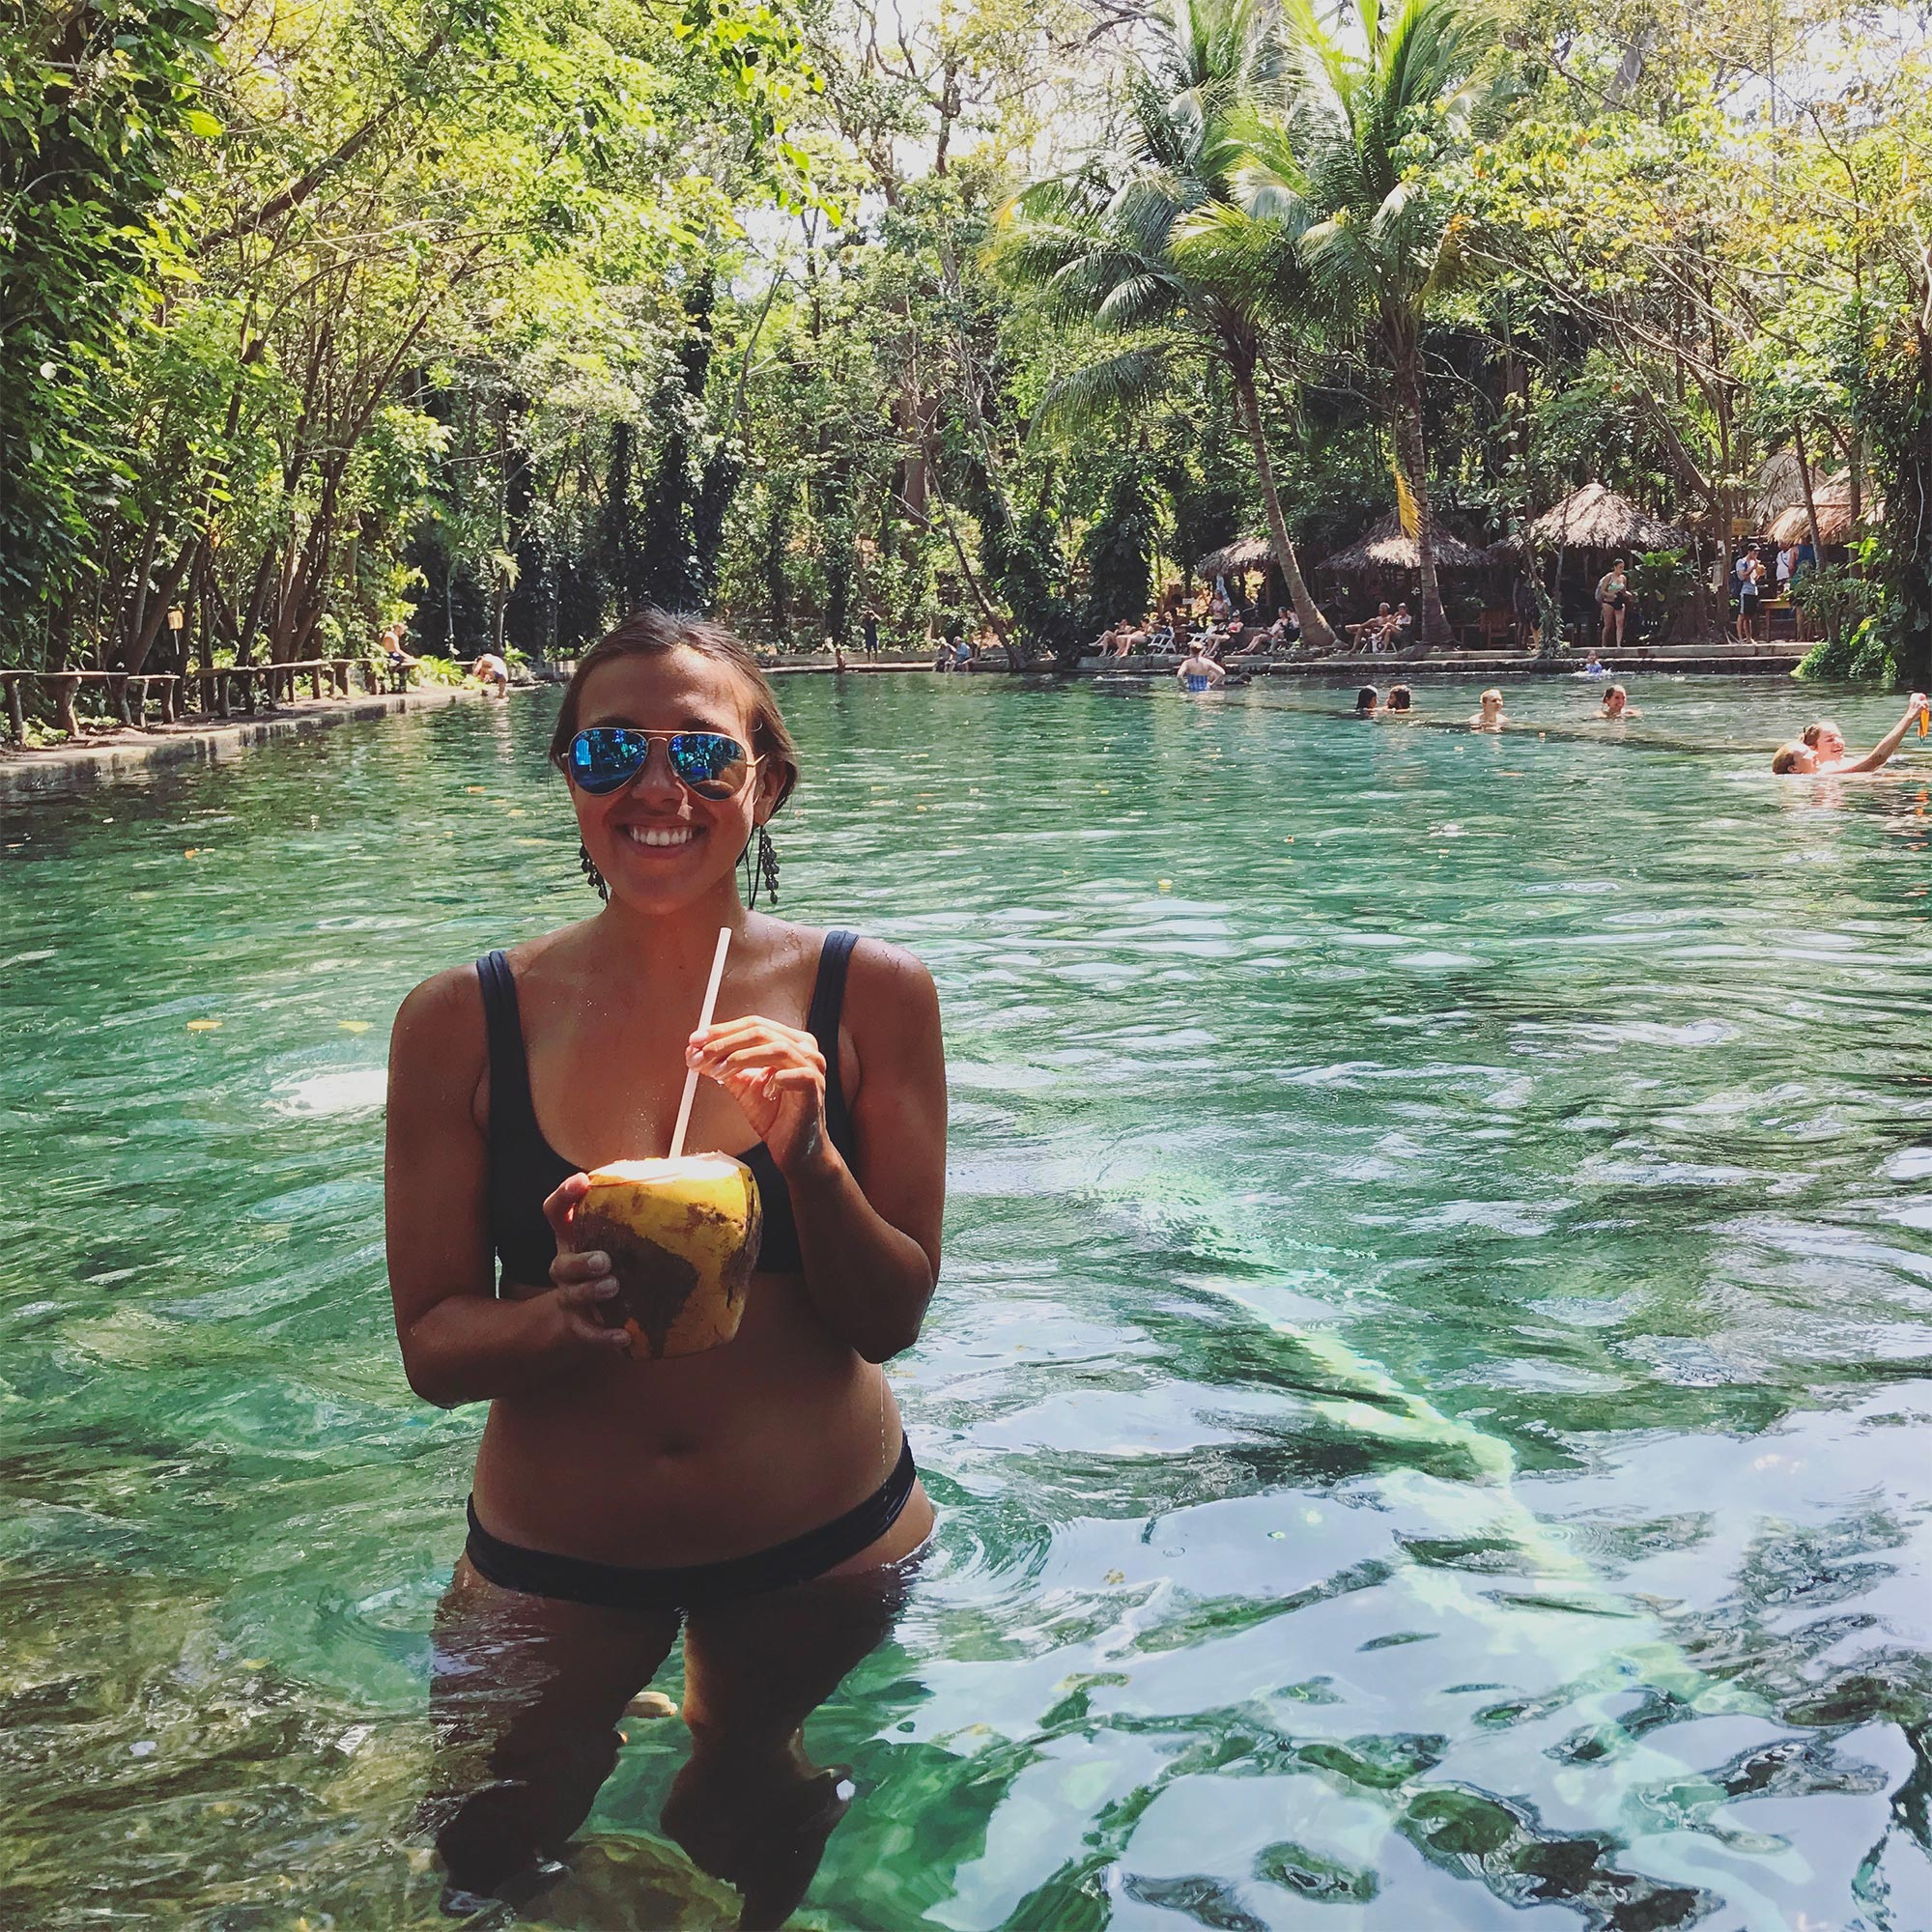 sapphire & elm travel co-founder, stephanie sipping on a coco loco at ojo de agua